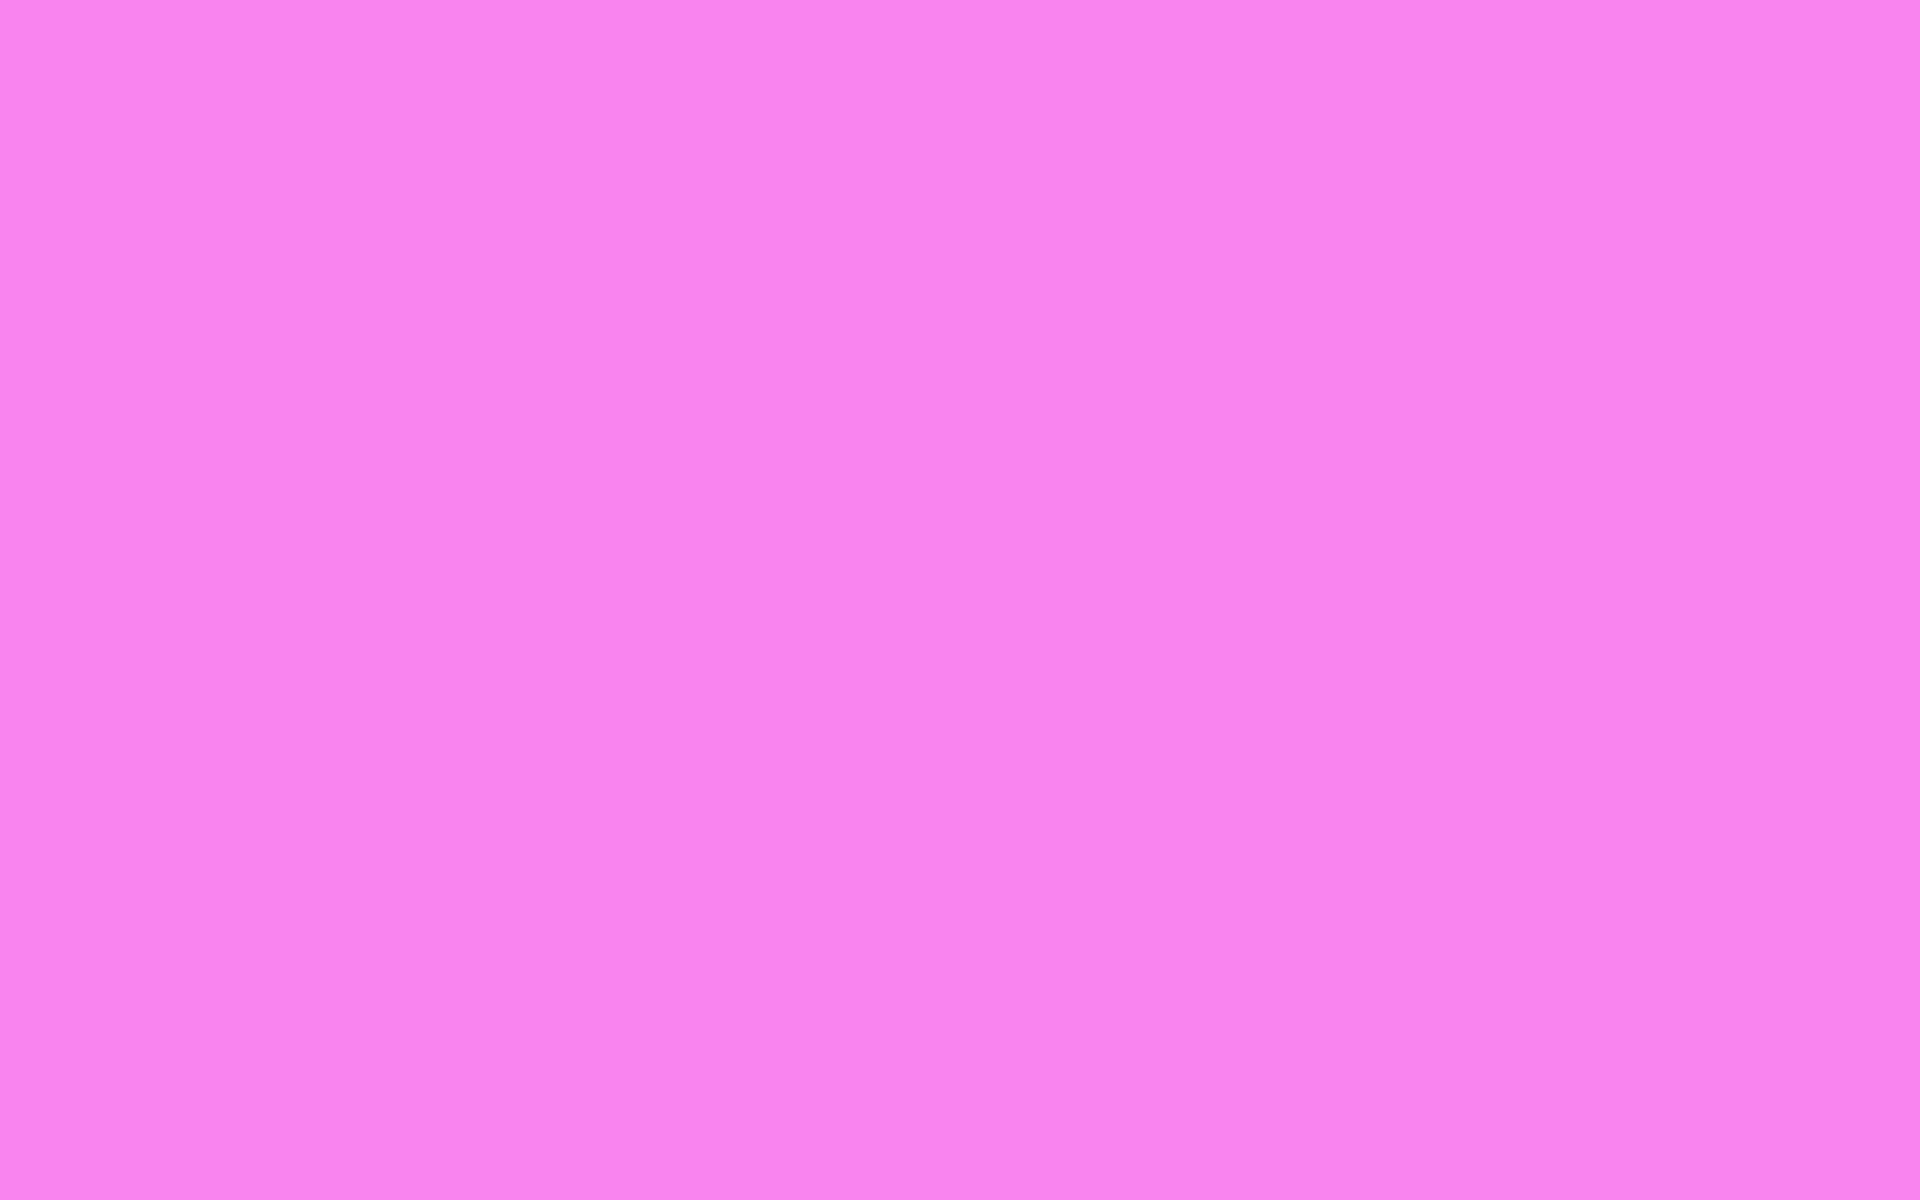 1920x1200 Light Fuchsia Pink Solid Color Background